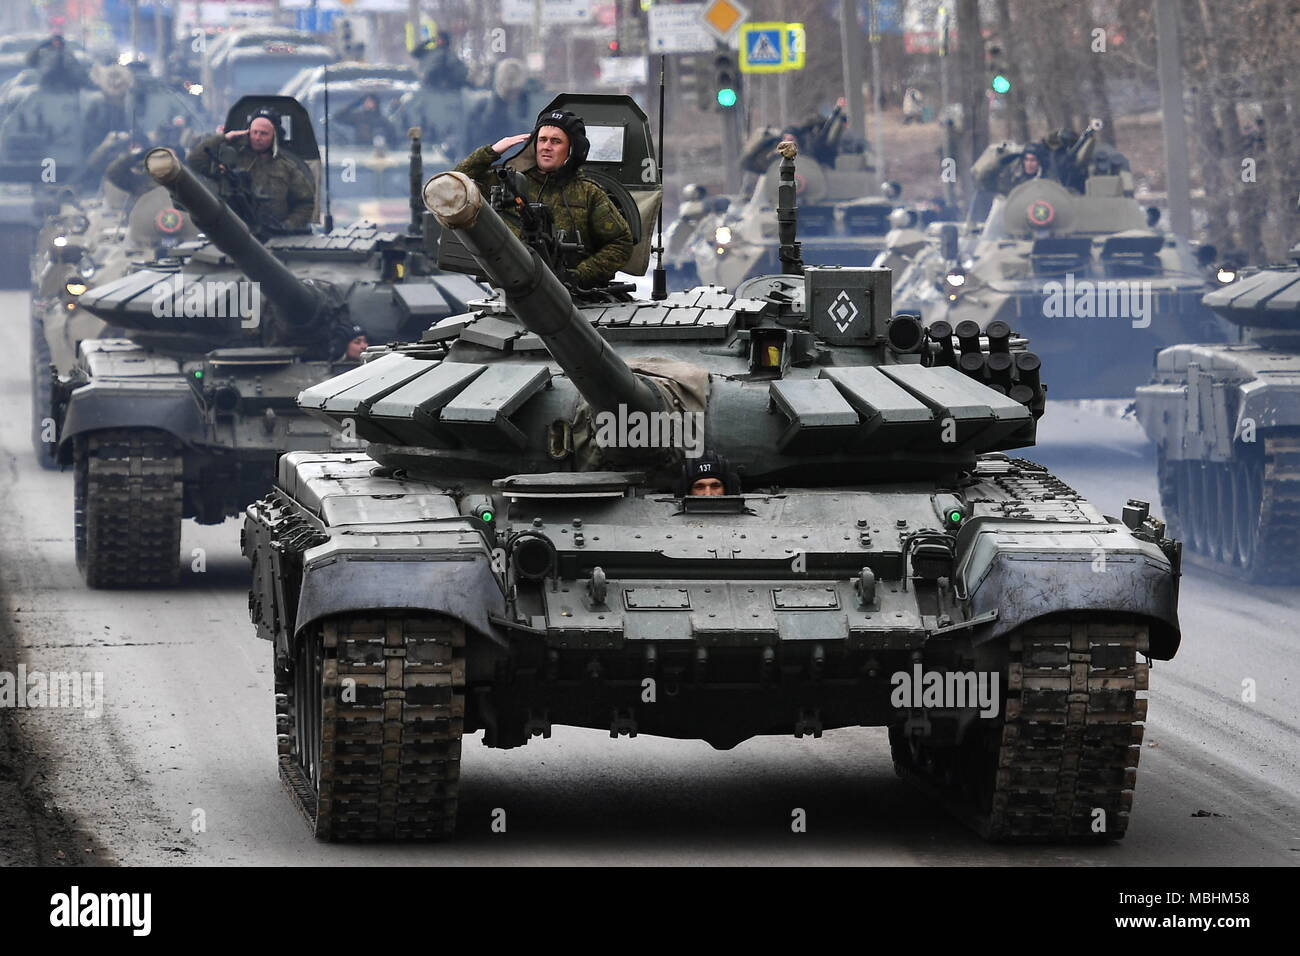 Yekaterinburg, Russia. 11th Apr, 2018. YEKATERINBURG, RUSSIA - APRIL 11, 2018: Servicemen seen on T-72B3 battle tanks during a rehearsal of a Victory Day military parade commemorating the 73rd anniversary of the victory over Nazi Germany in the 1941/45 Great Patriotic War, the Eastern Front of World War II. Donat Sorokin/TASS Credit: ITAR-TASS News Agency/Alamy Live News - Stock Image